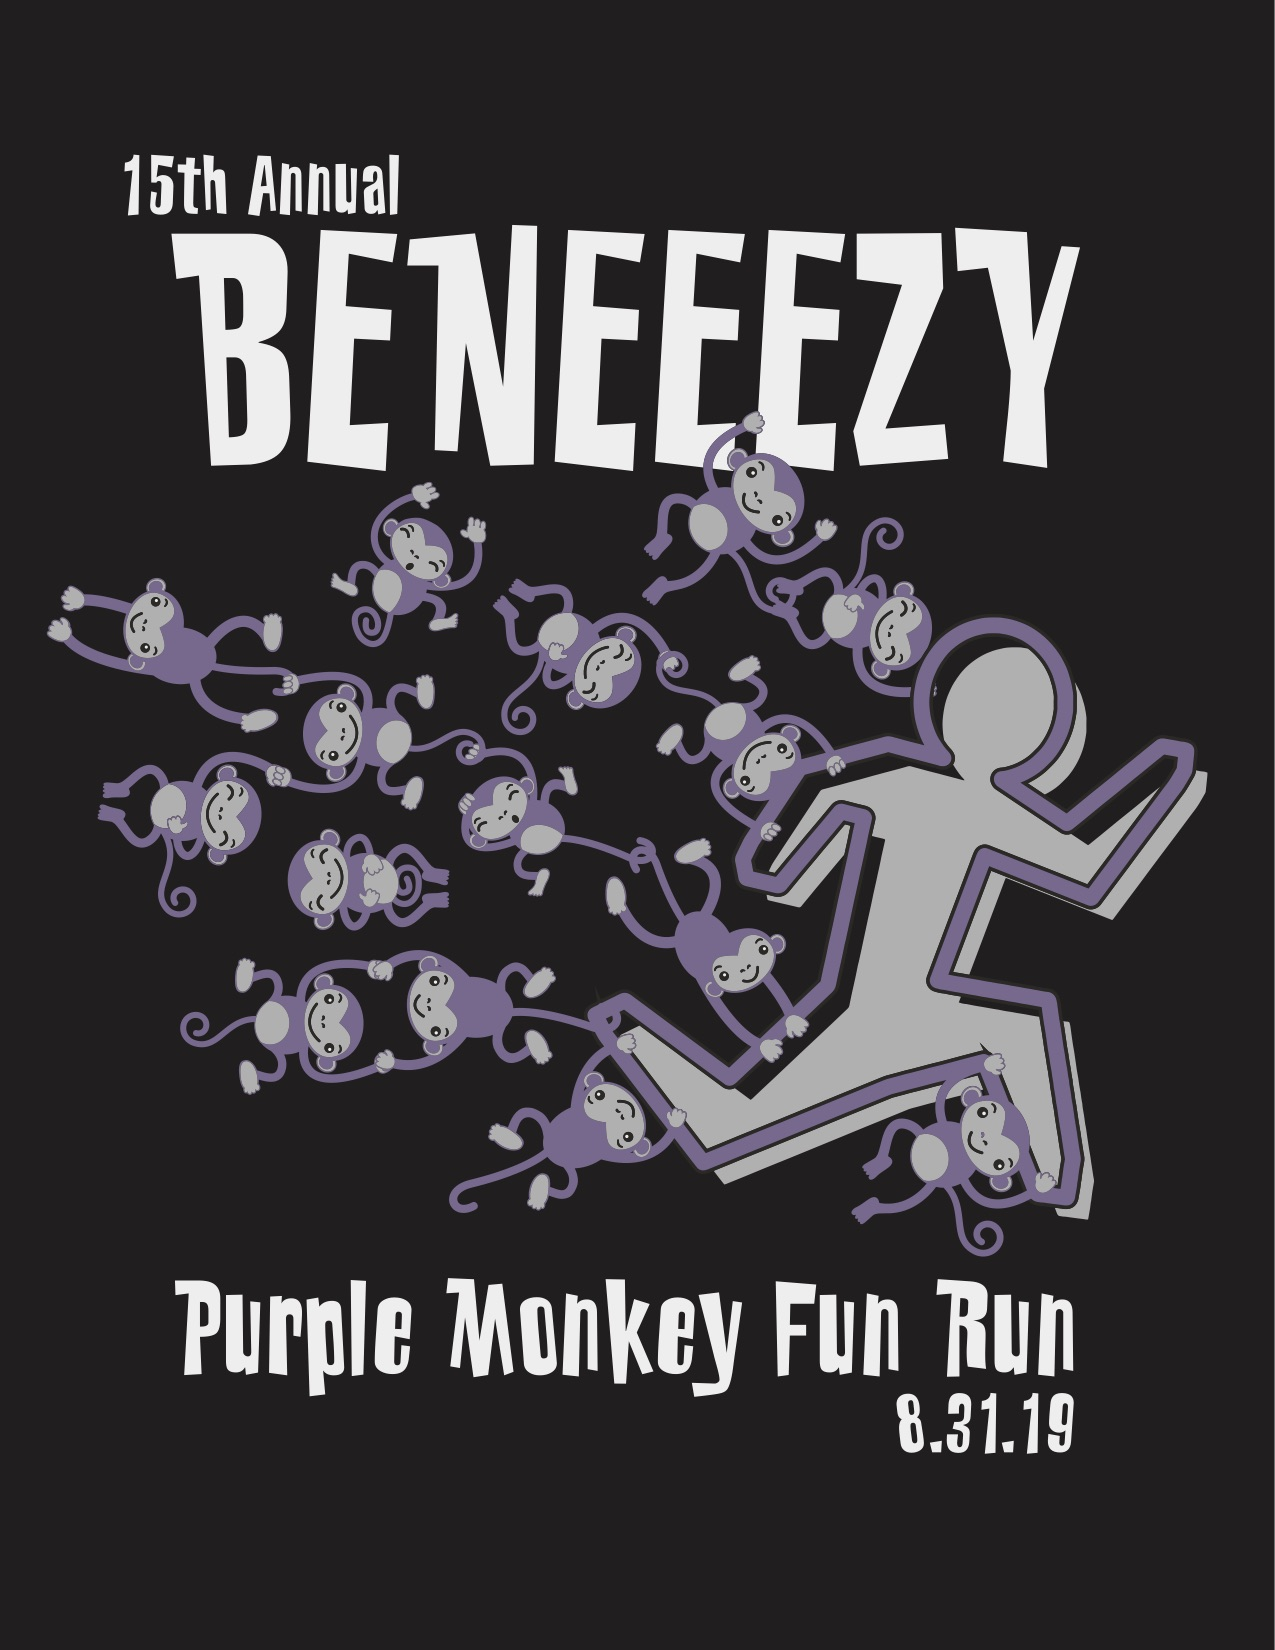 15th Annual Beneezy Purple Monkey Fun Run